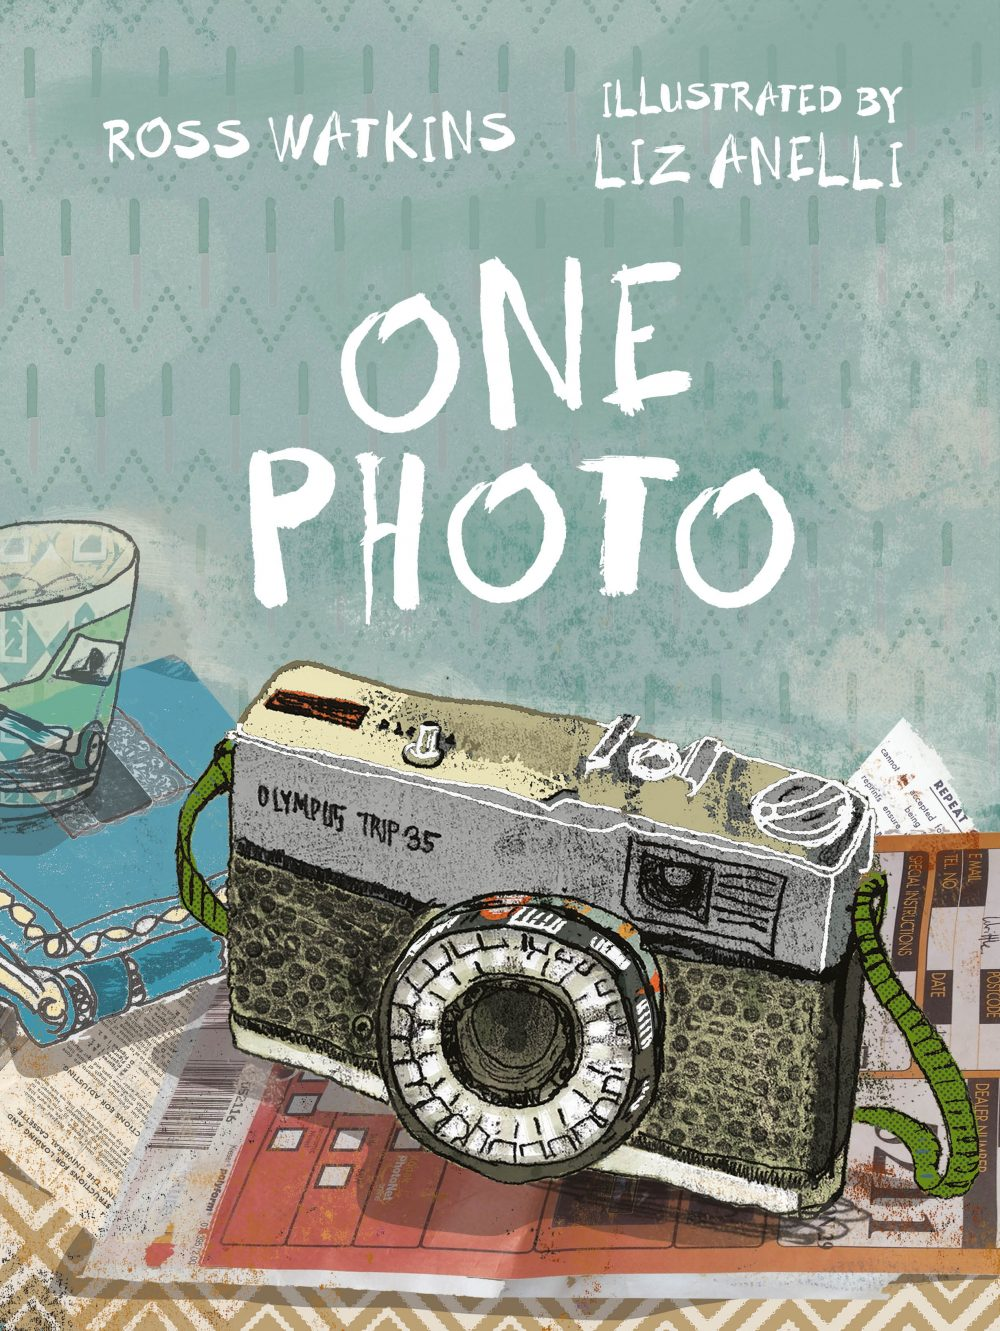 One Photo picture book, Penguin Books, Ross Watkins, Liz Anelli